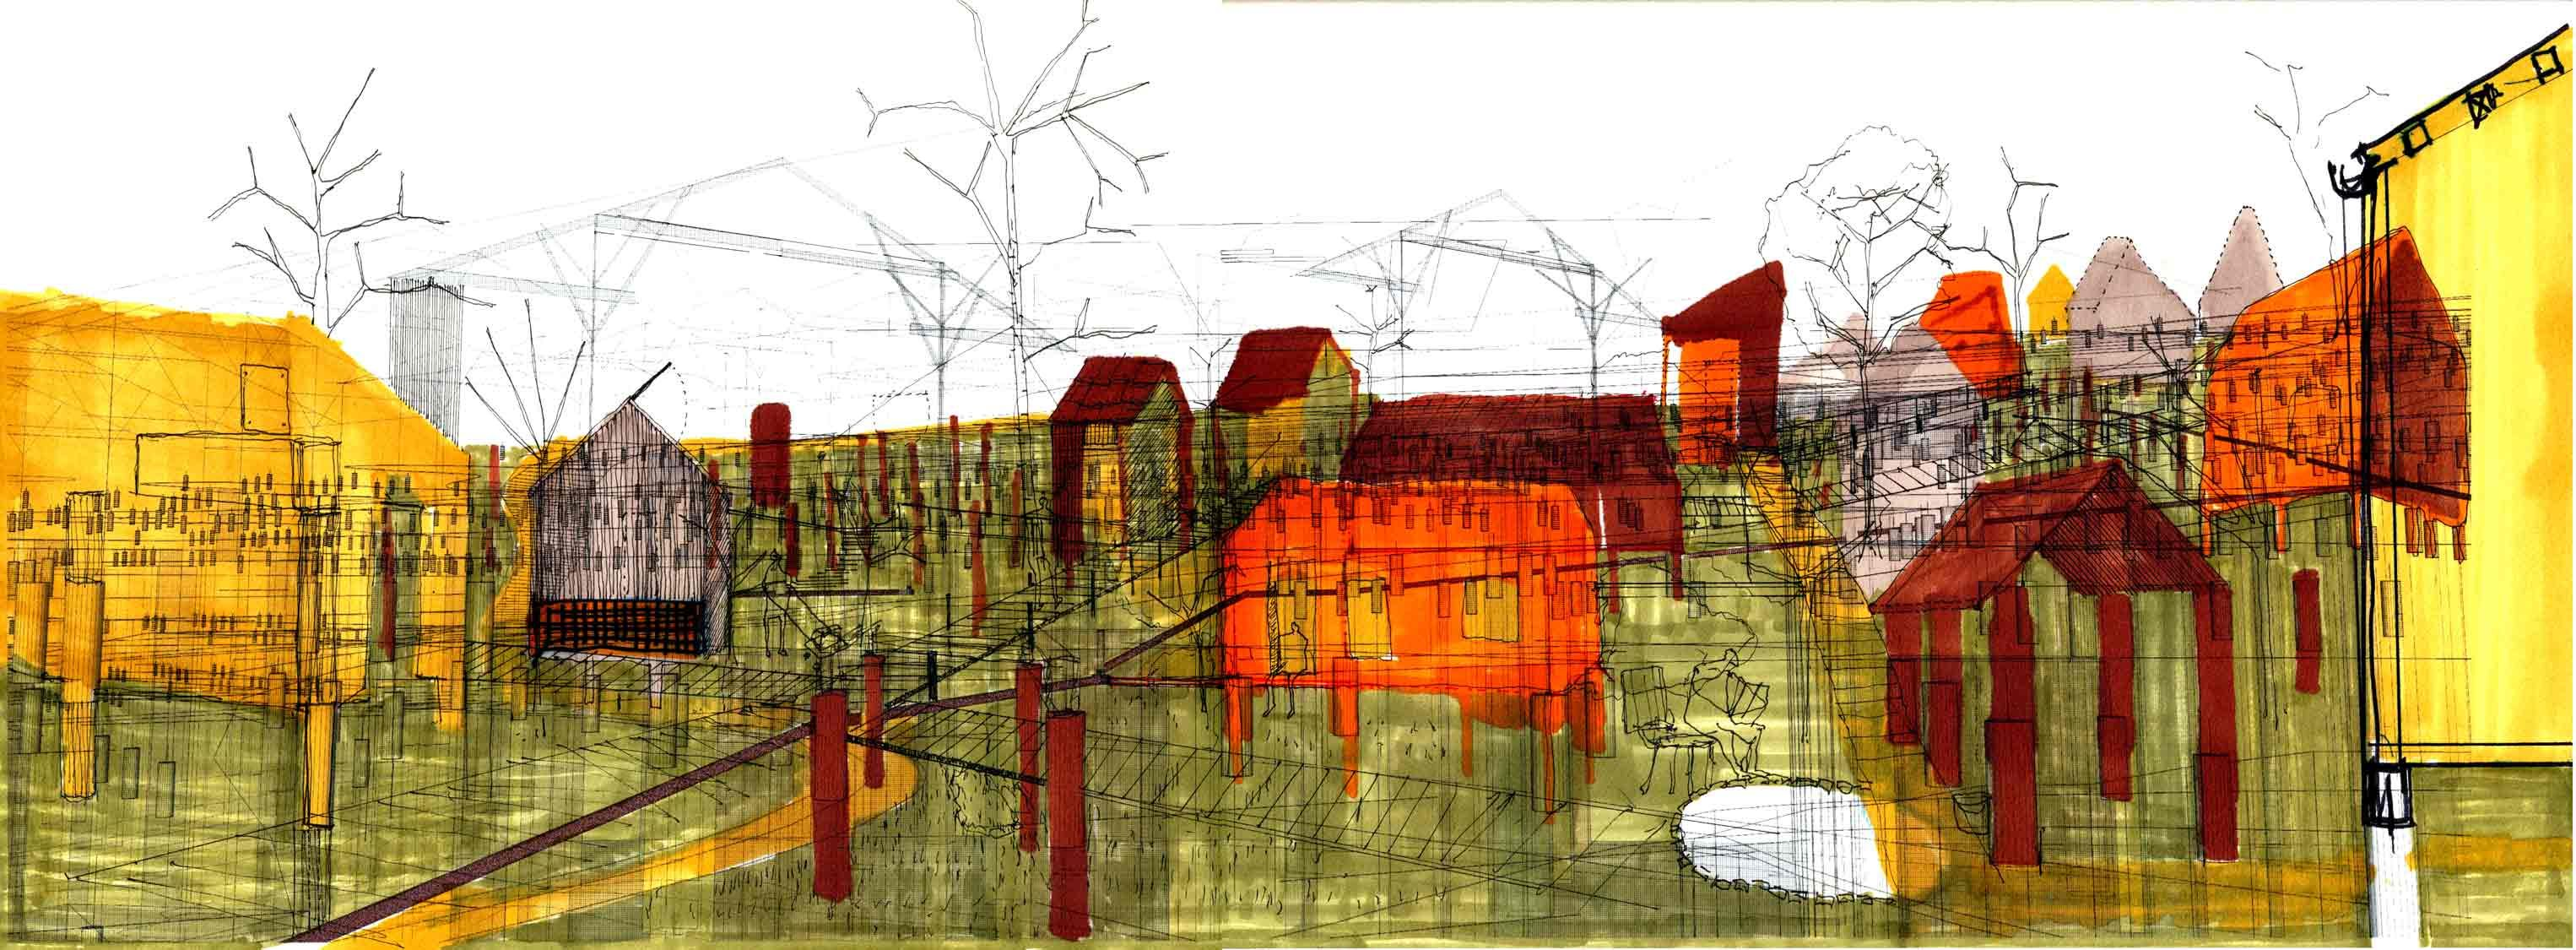 Life on the Lots (2) -- 2012 23.4″ x 8.8″ digital drawing (3D model), ink and colour markers on paper -- 127-Jonas Larsen-15 -- http://www.jonasguneriuslarsen.com/